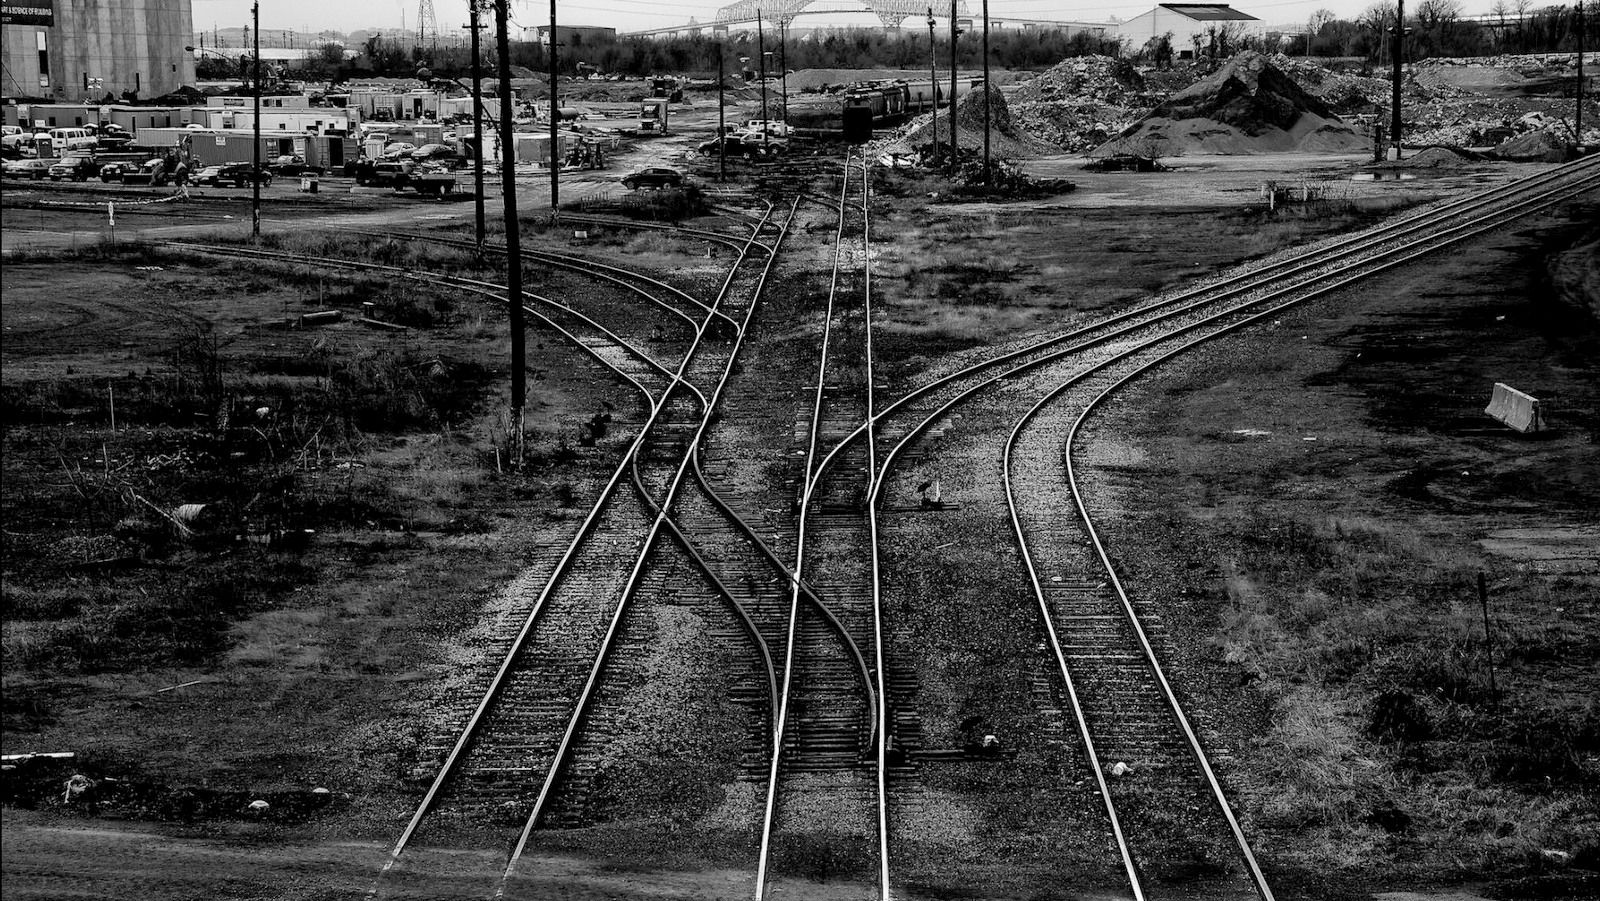 Abandoned railroad tracks at the former Sparrows Point steel mill. (J.M. Giordano)